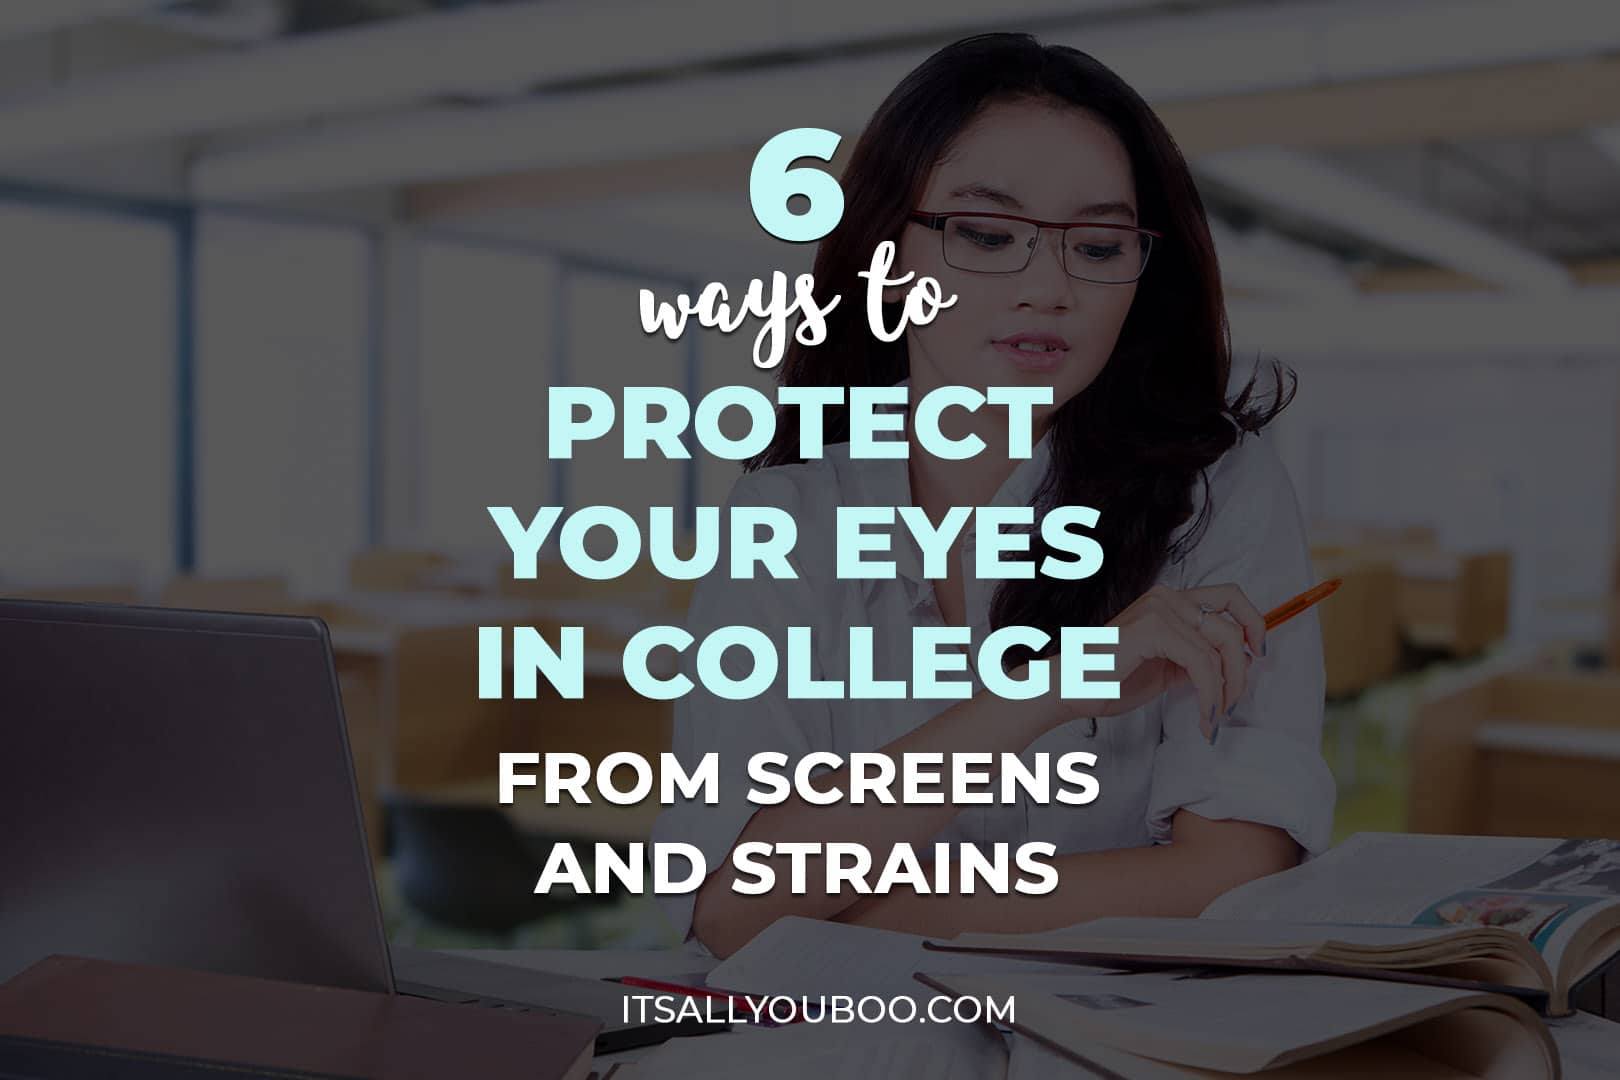 6 Ways to Protect Your Eyes in College from Screens and Strains